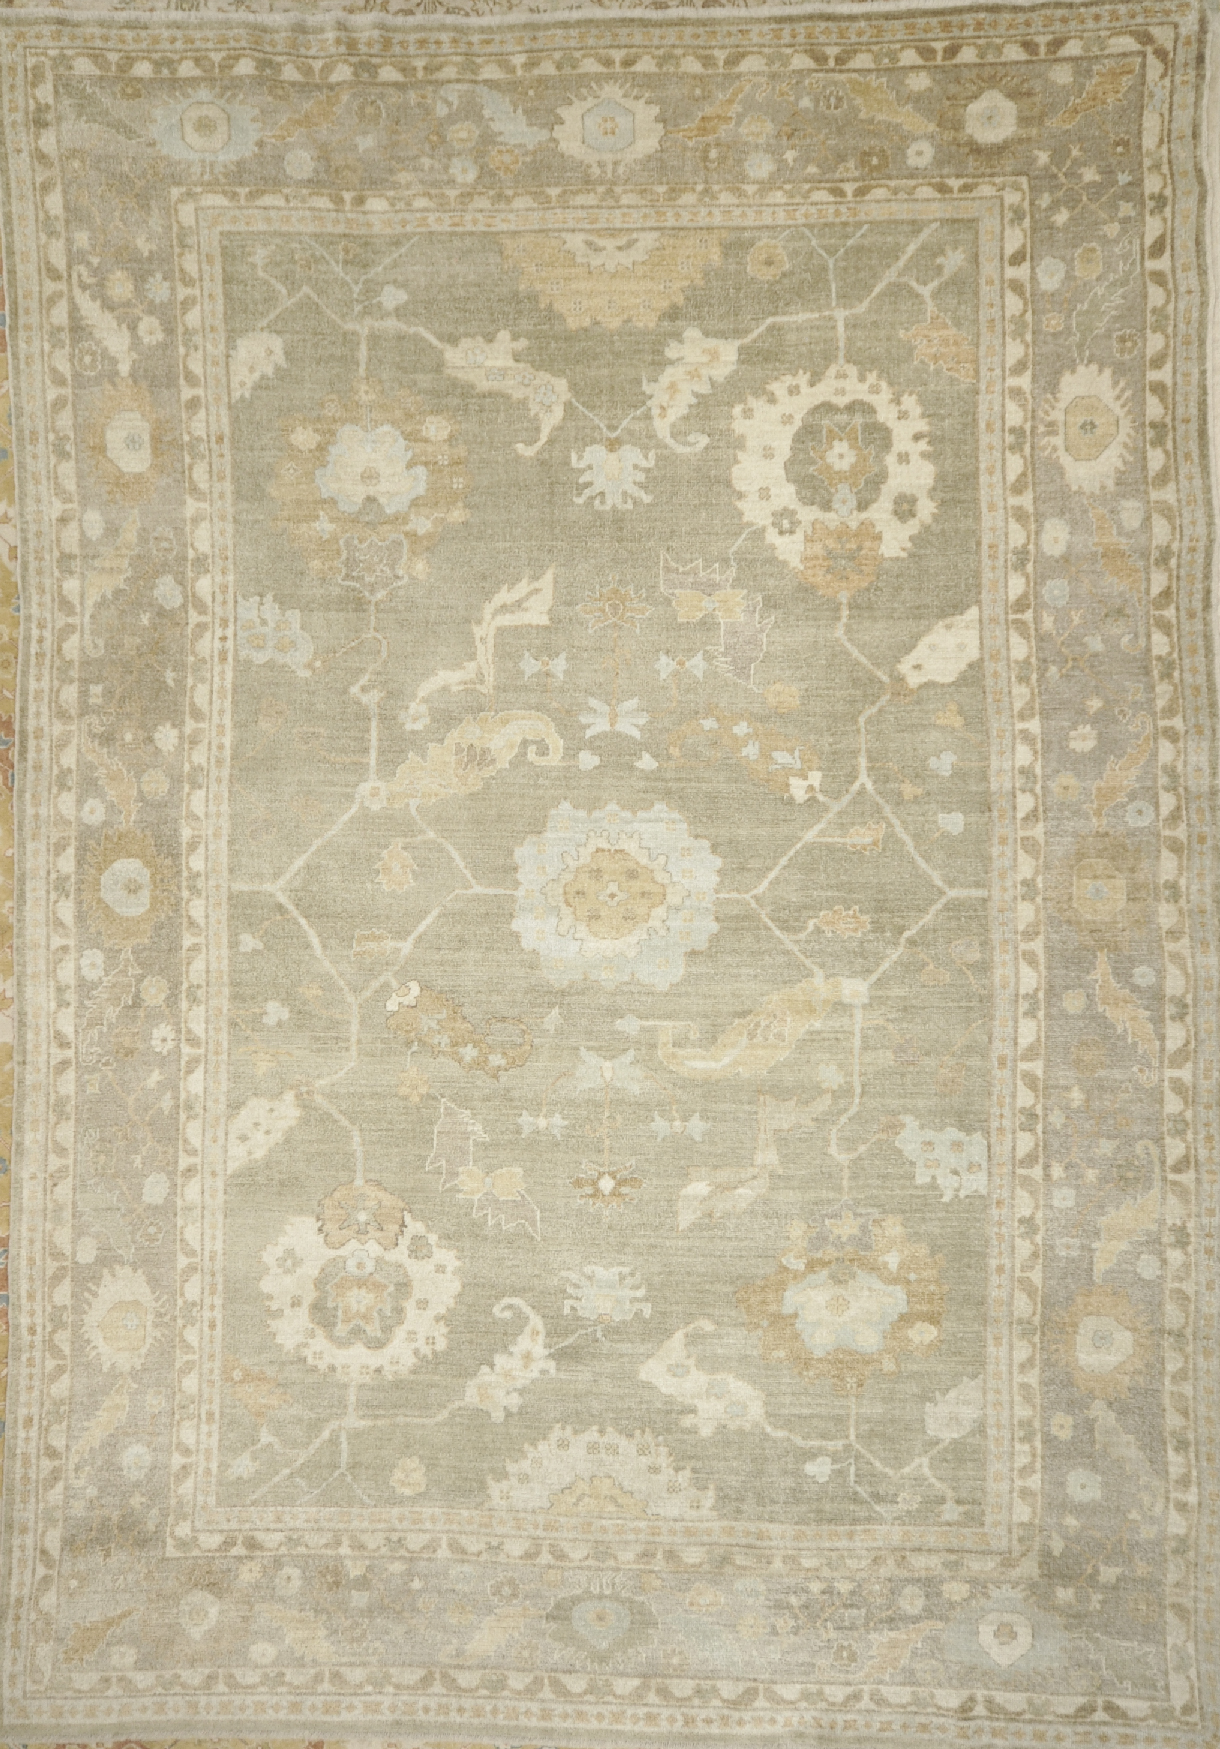 Finest Turkish Angora Oushak | Rugs & More| Santa Barbara Design 43549